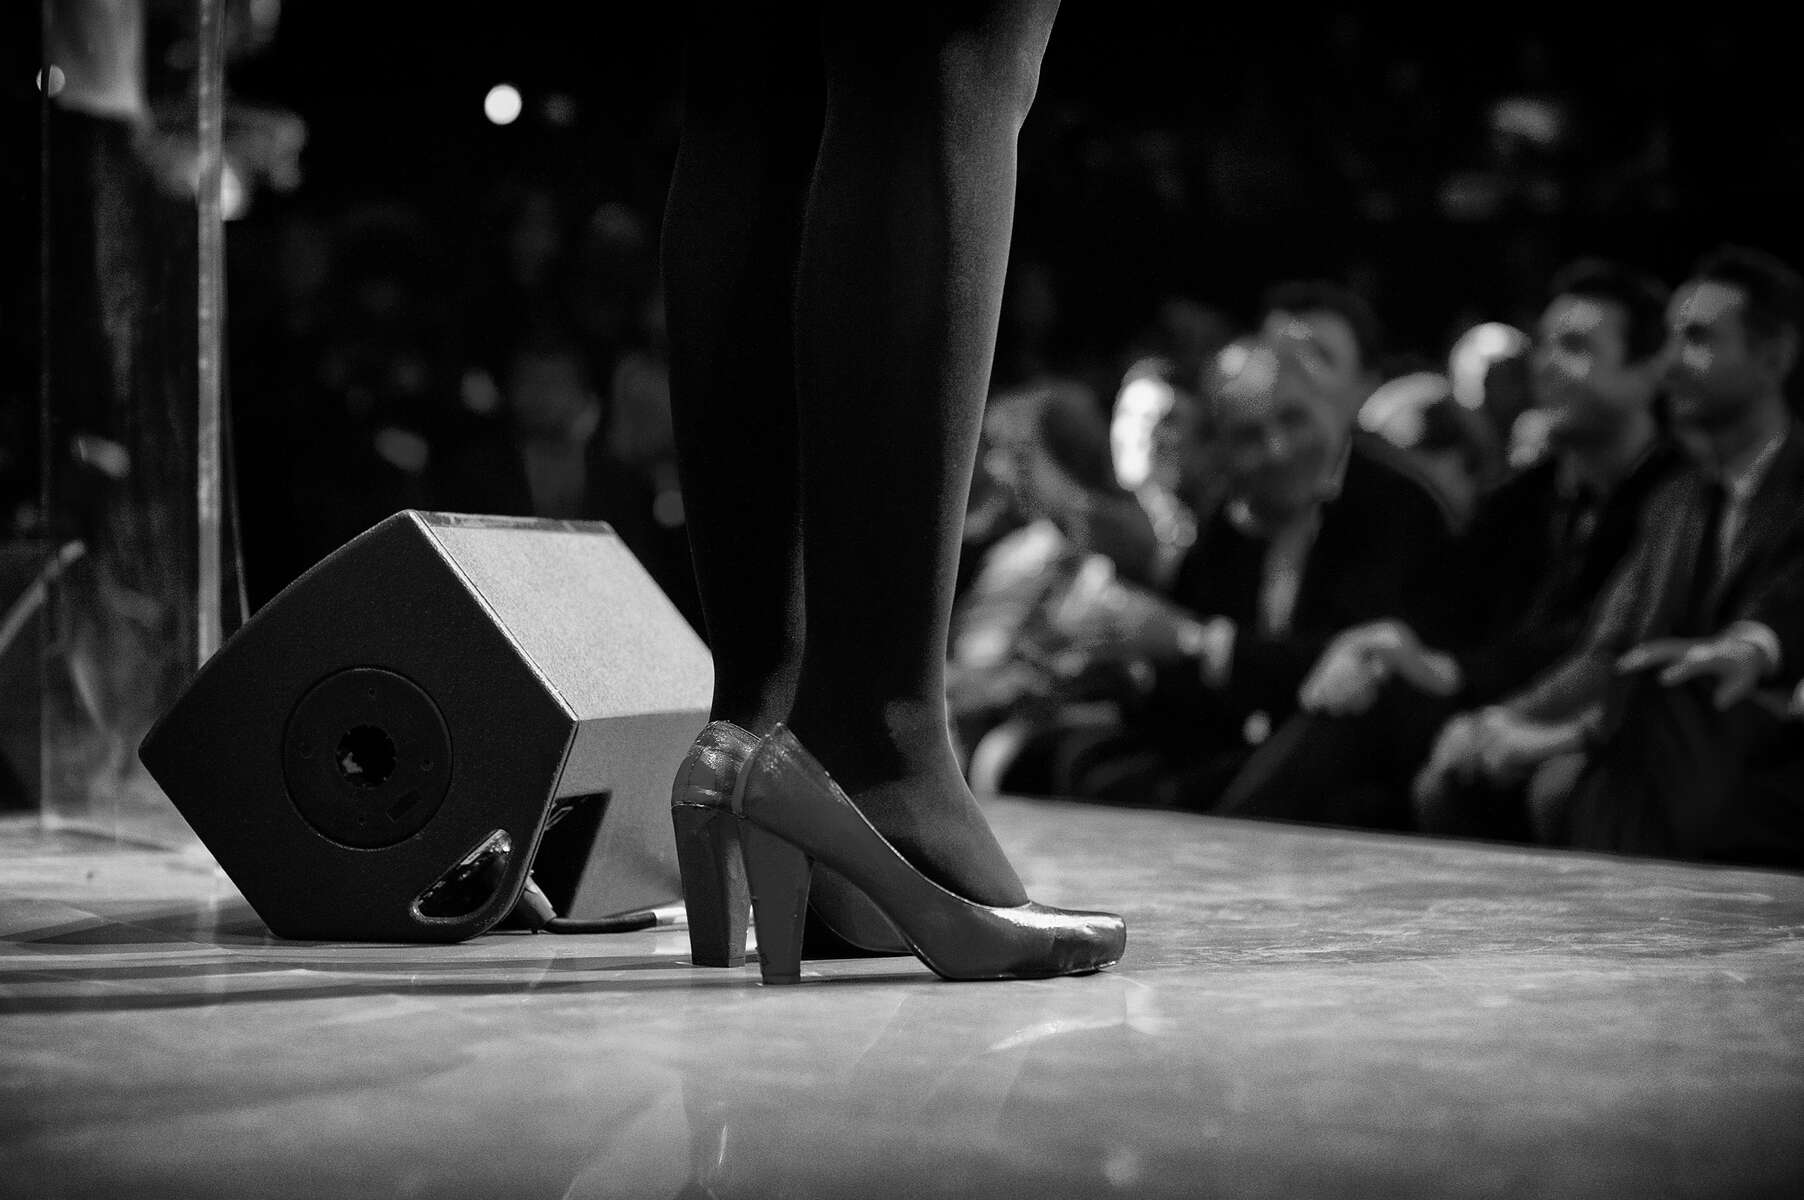 March 13, 2014.  PARIS, FRANCE- The MC at mayoral candidate Anne Hidalgo's big rally at Paris' historic Cirque d'Hiver wears fabulous shoes.  For the first time in France's history, Paris will have a woman as a mayor - either Socialist Anne Hidalgo or Center-Right Nathalie Kosciusko-Morizet.  Photo by Scout Tufankjian